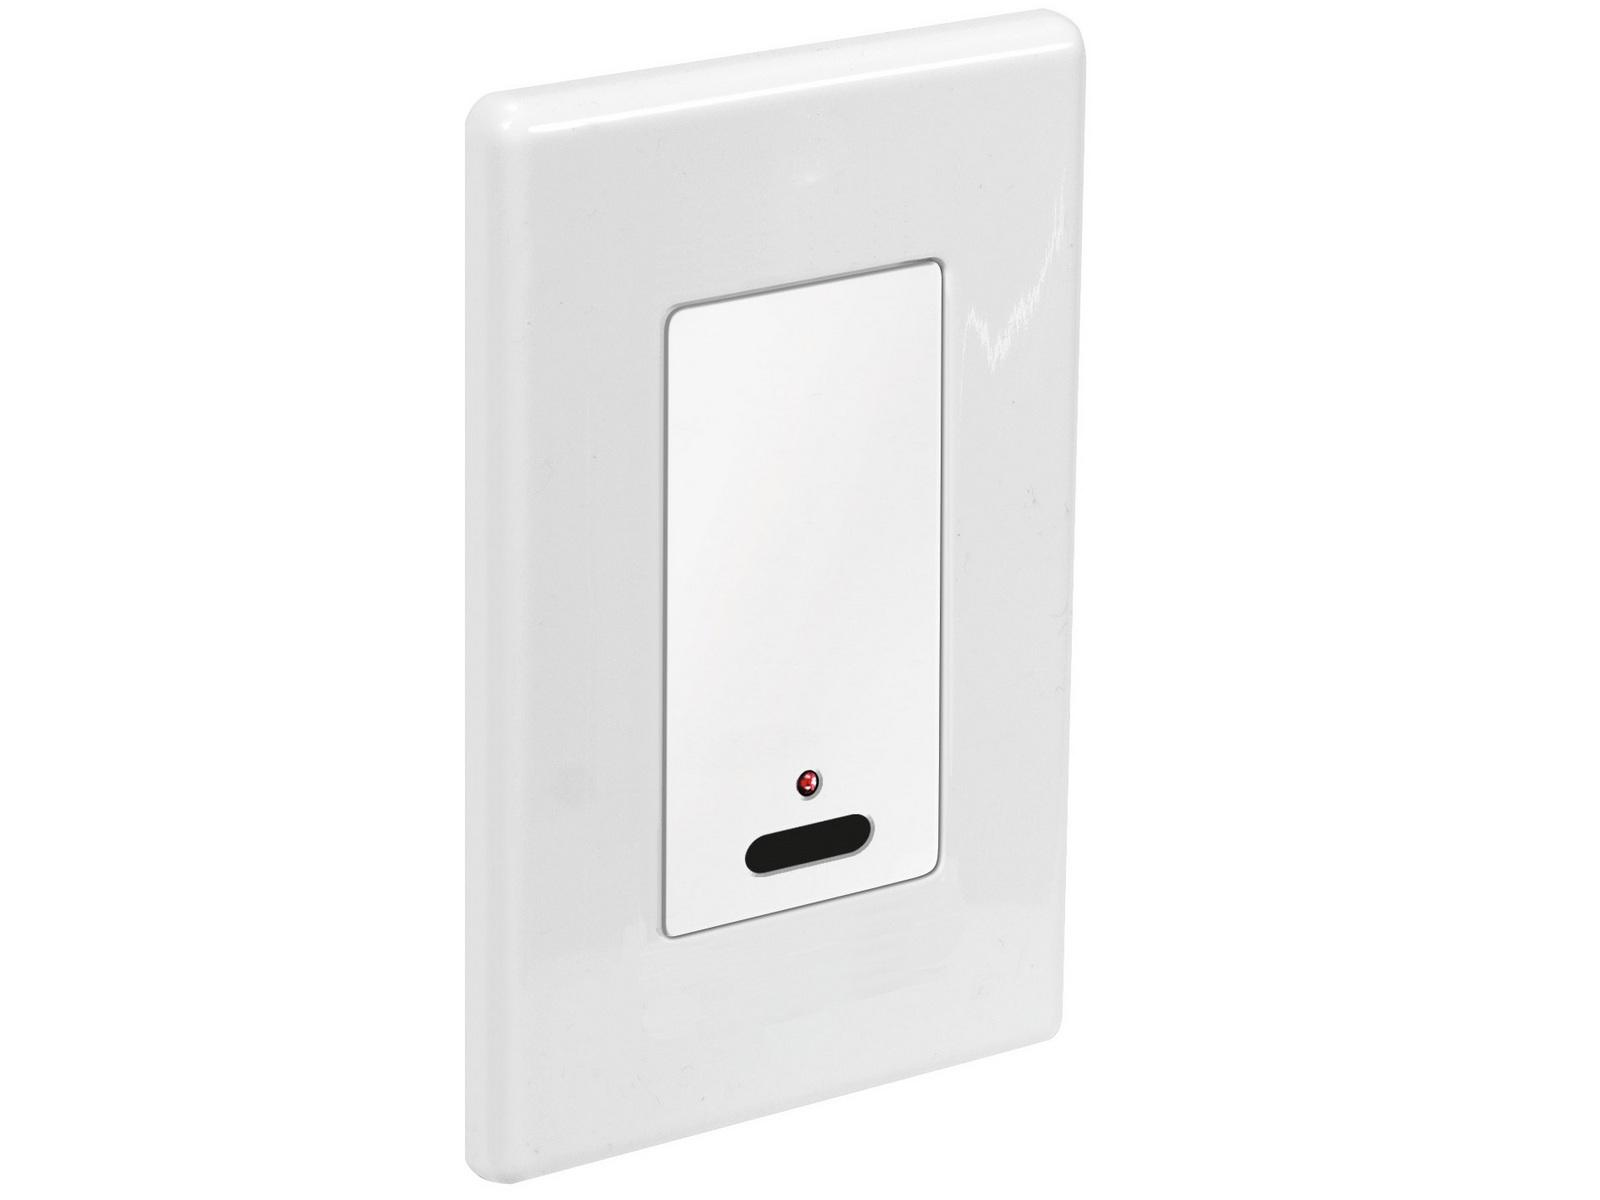 KD-IRP3099W IR Wall Plate Extender (Receiver) by Key Digital